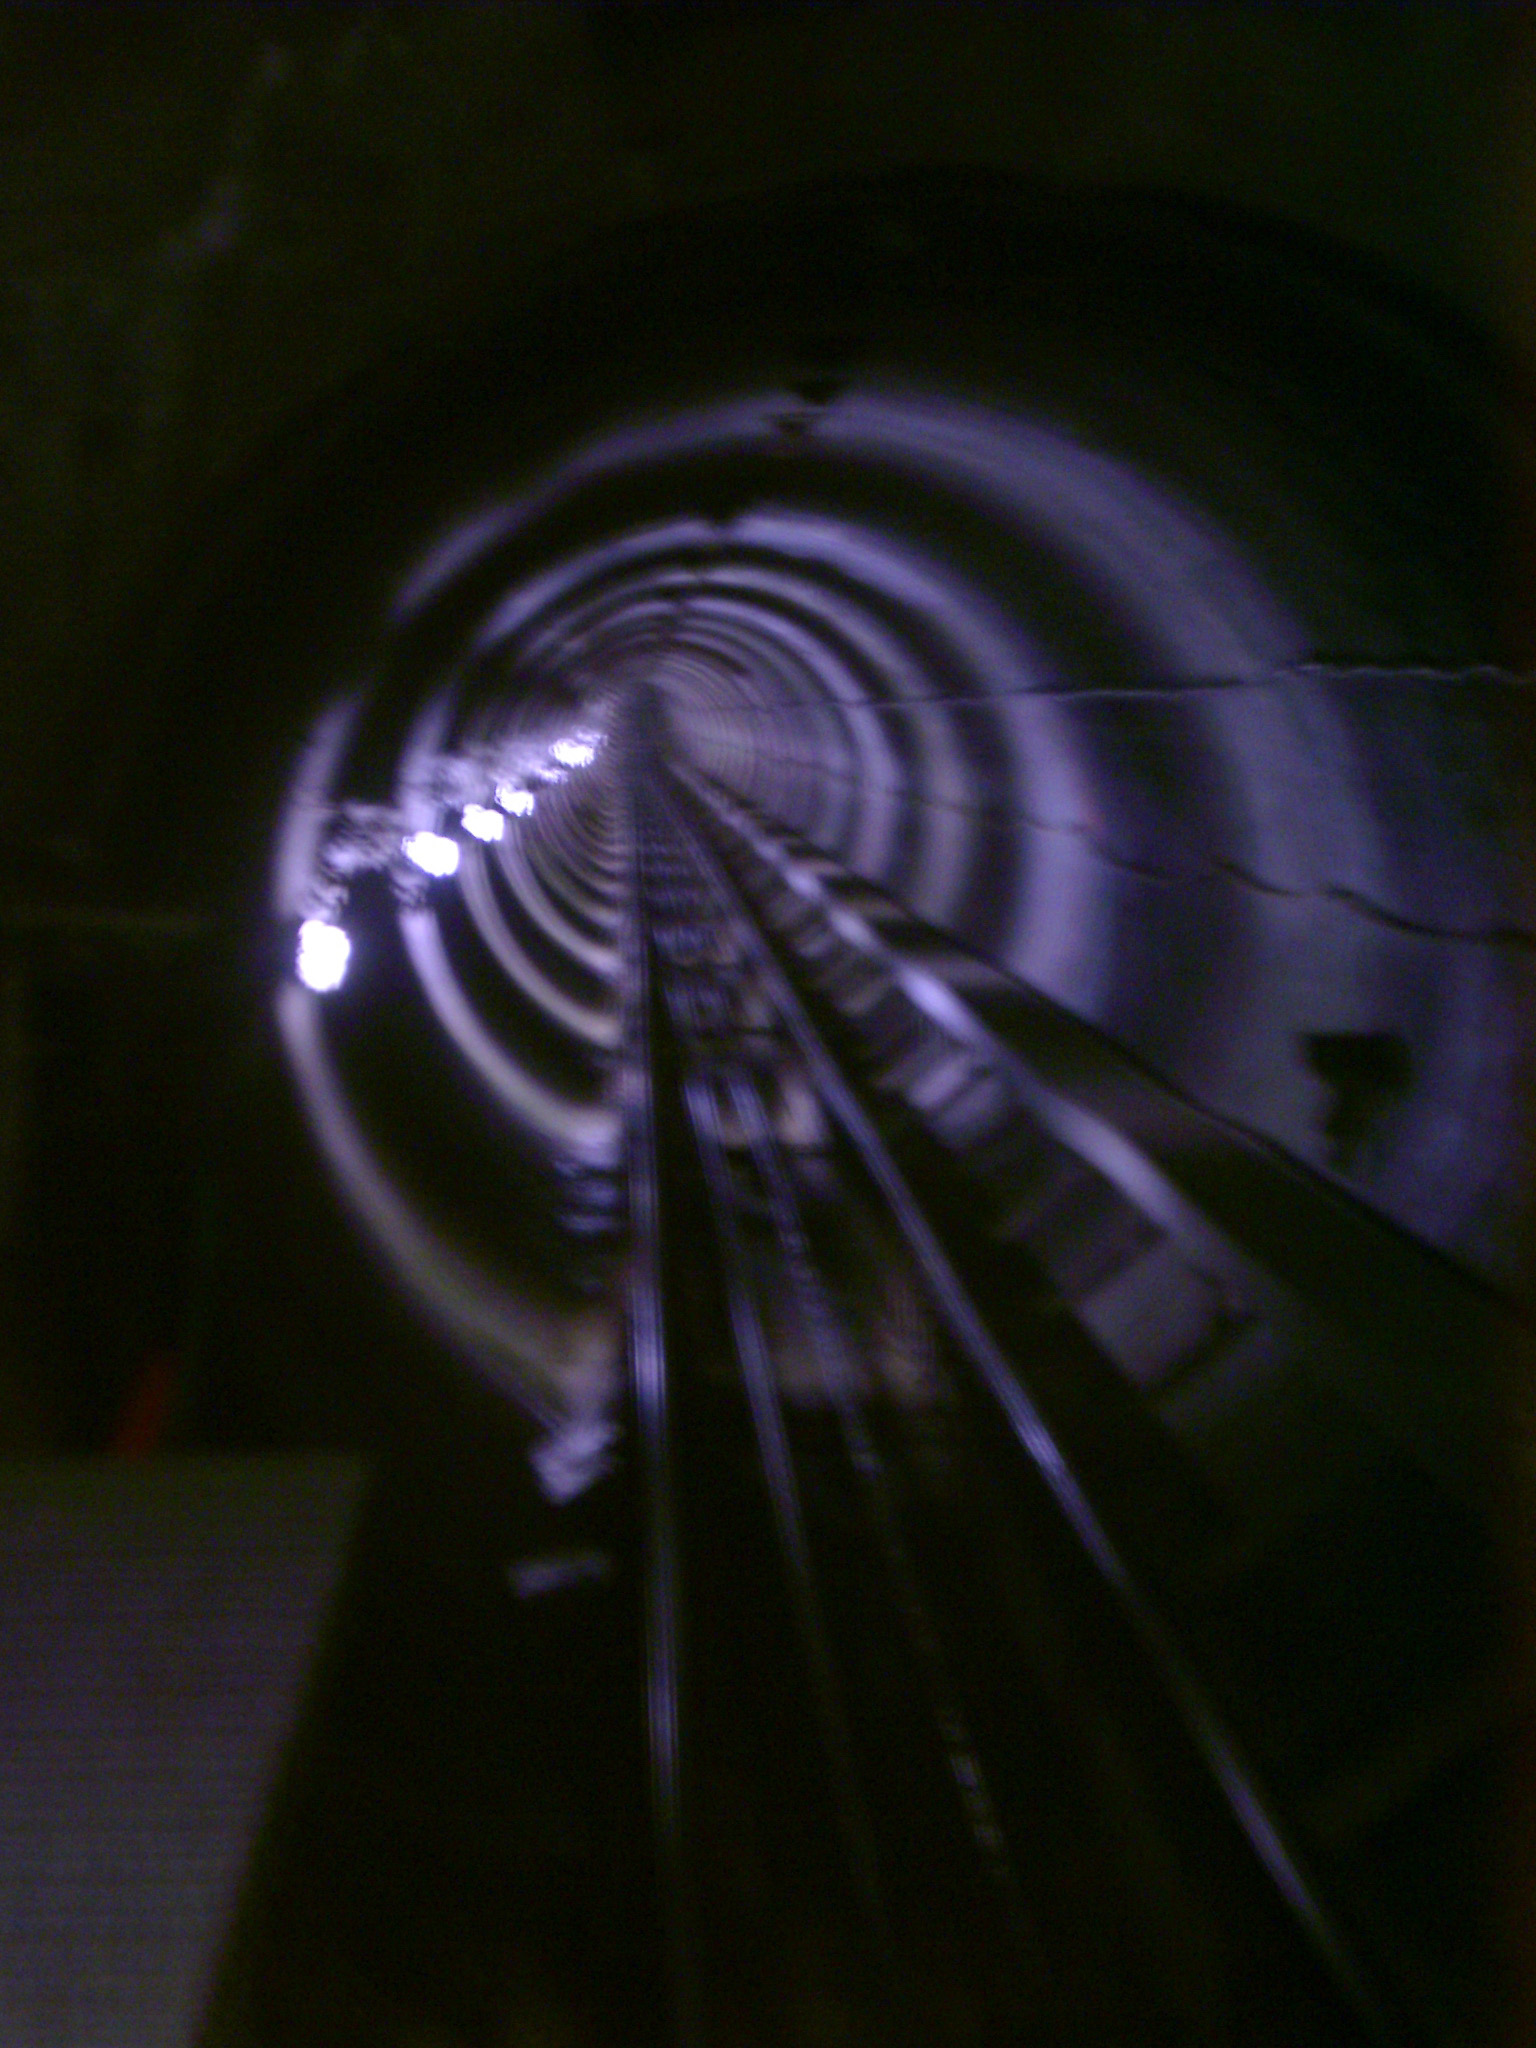 Blurred receding view of a rail tunnel taken from a moving train disappearing in to the darkness in a rail travel, commuting, and vacation concept